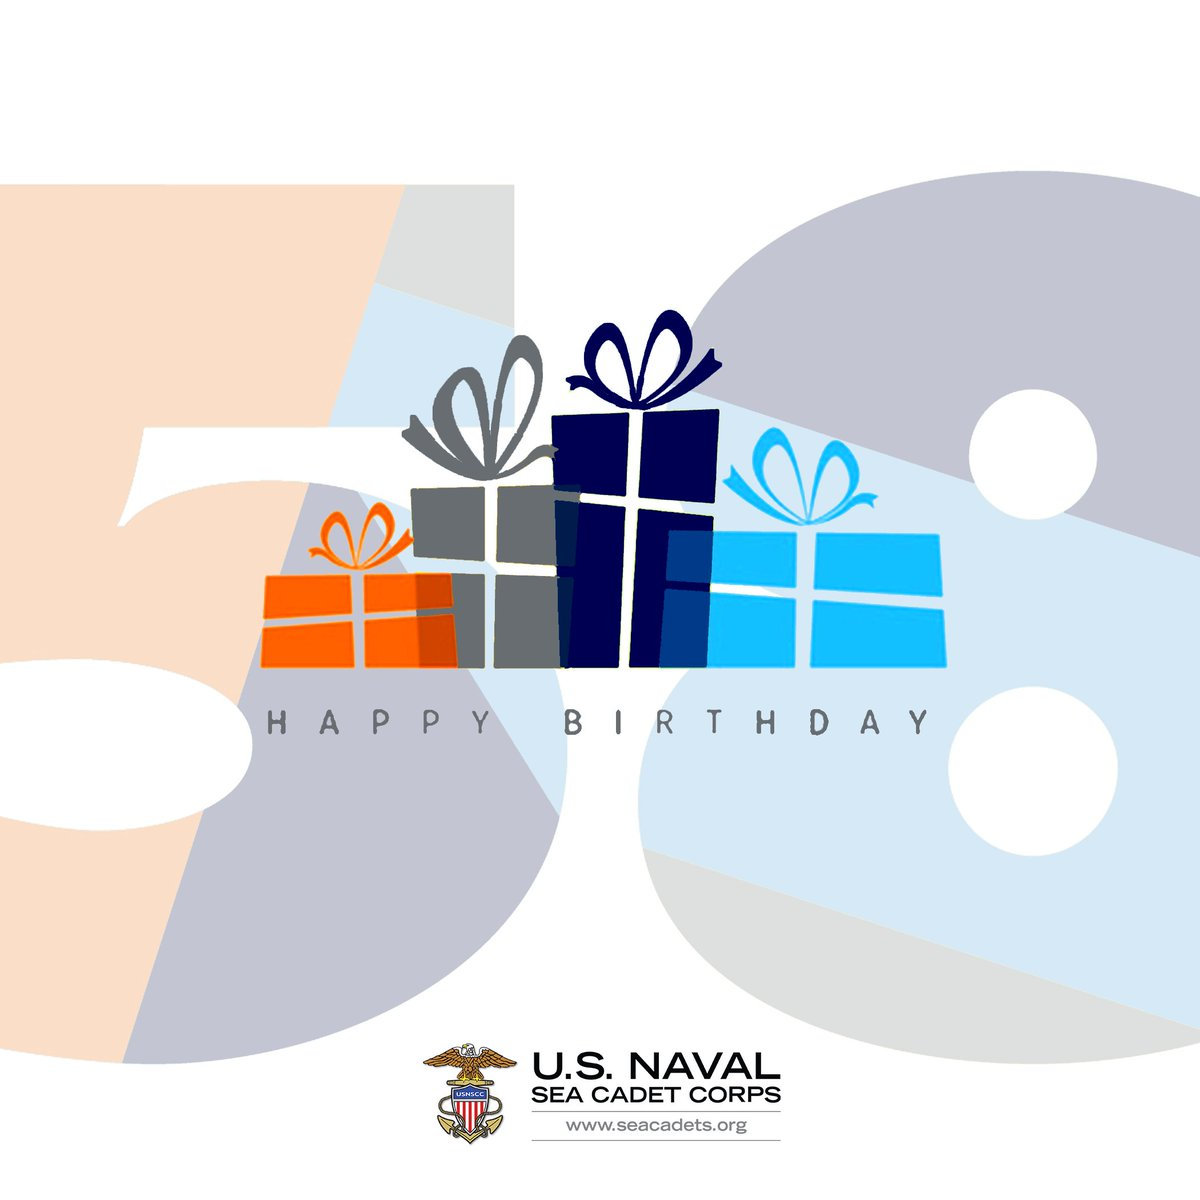 58 years ago, something special started...Happy Birthday U.S. Naval Sea Cadet Corps! We will be celebrating all day on Instagram. We will be hosting games, posting videos, sharing stories, and more. Make sure to check us out and give us a follow today! instagram.com/officialusnscc/